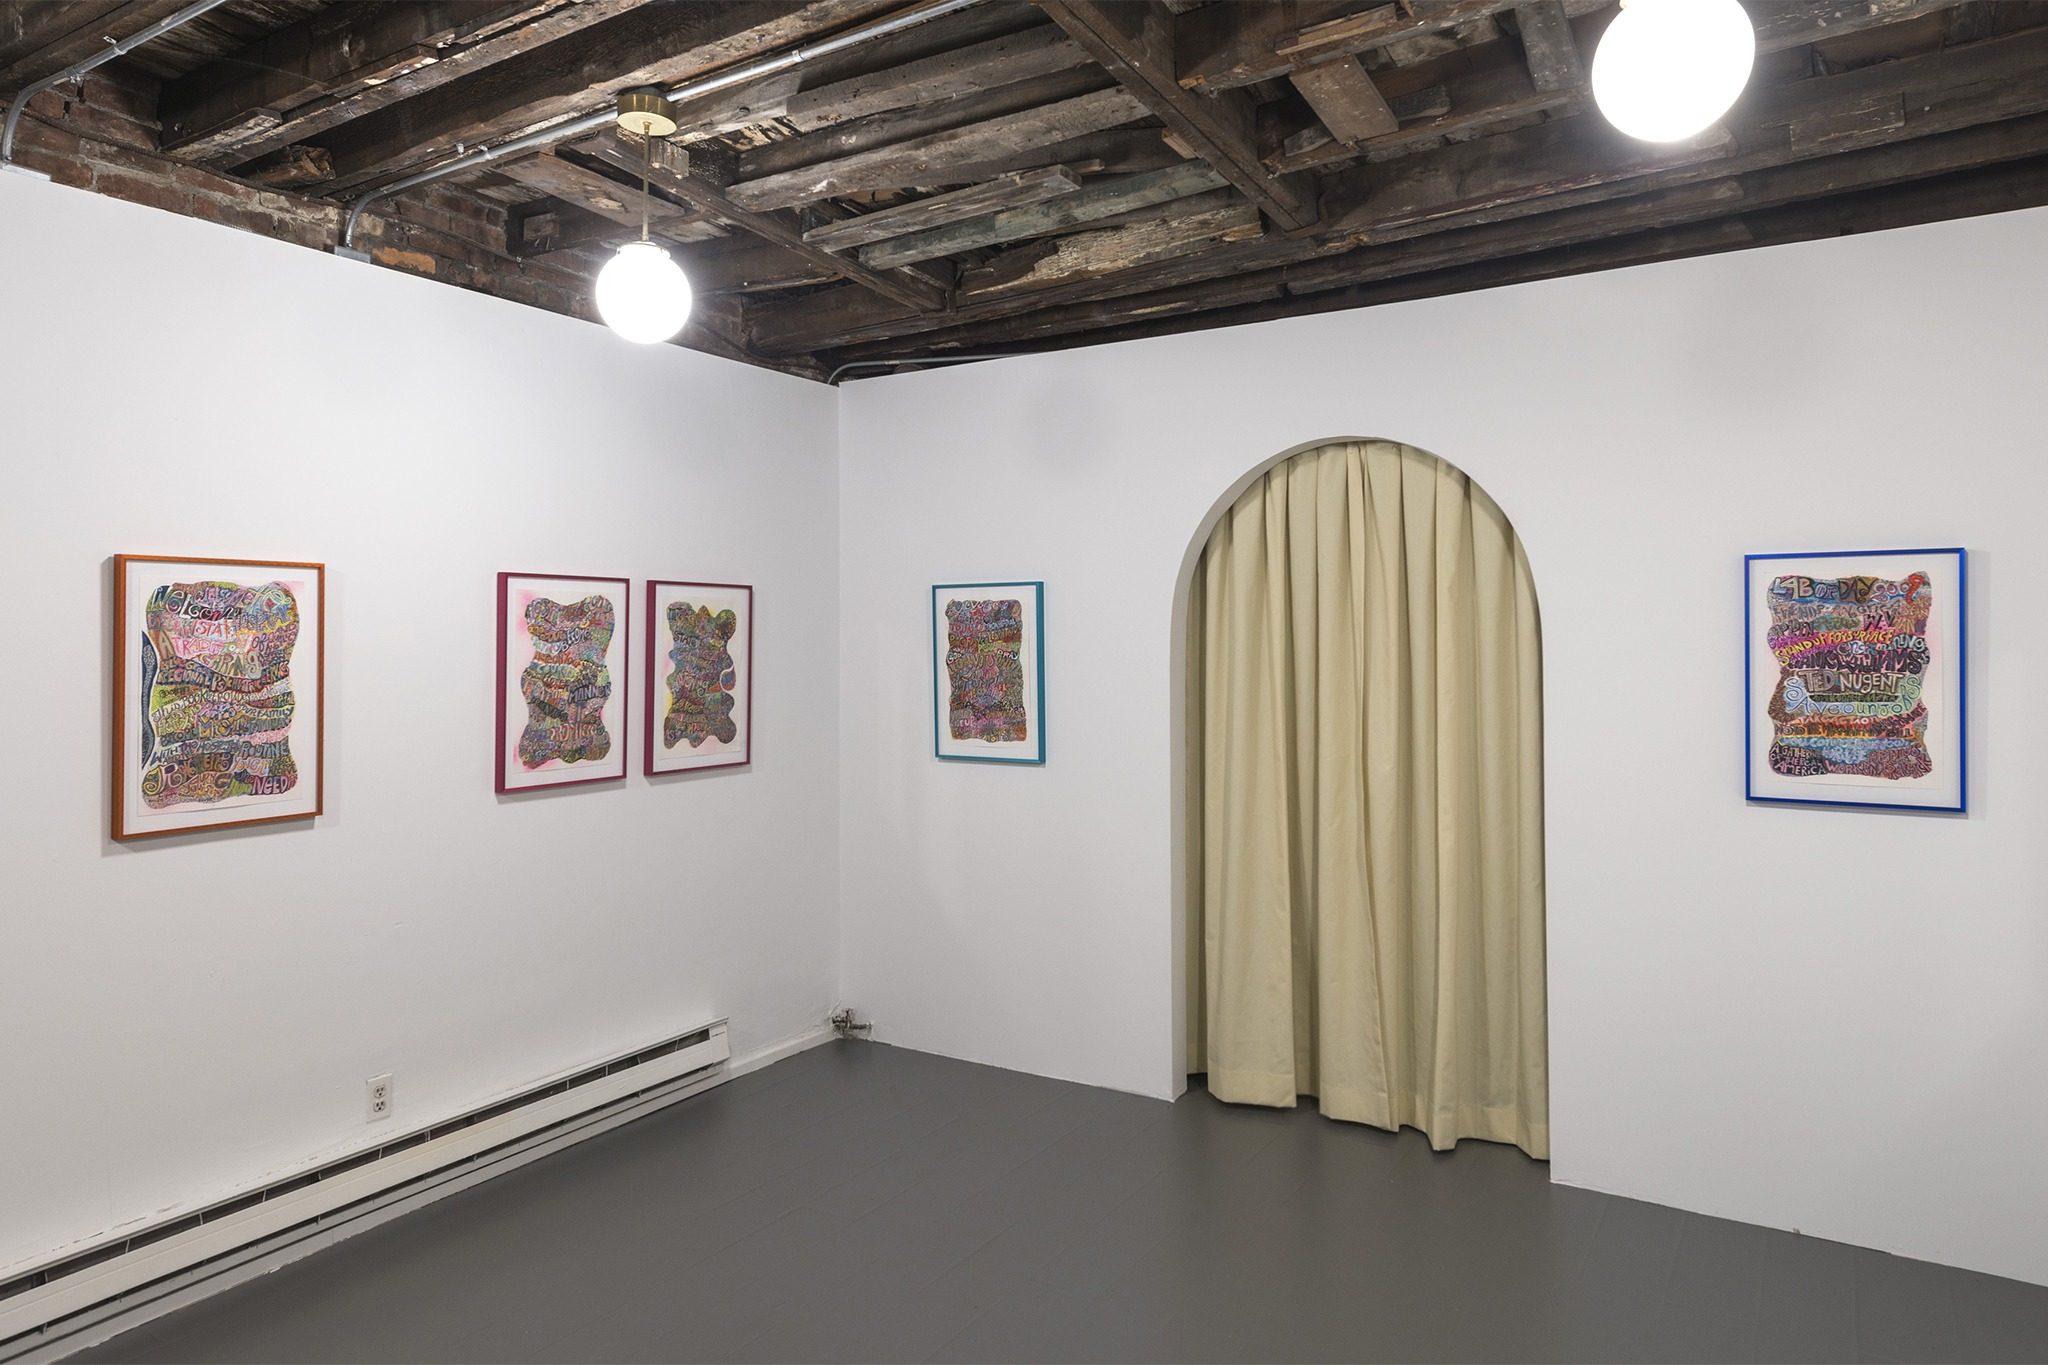 An installation view of the exhibition, Bruce Burris: Friends of Foes, at MARCH x Summertime, Brooklyn, New York, in 2021.